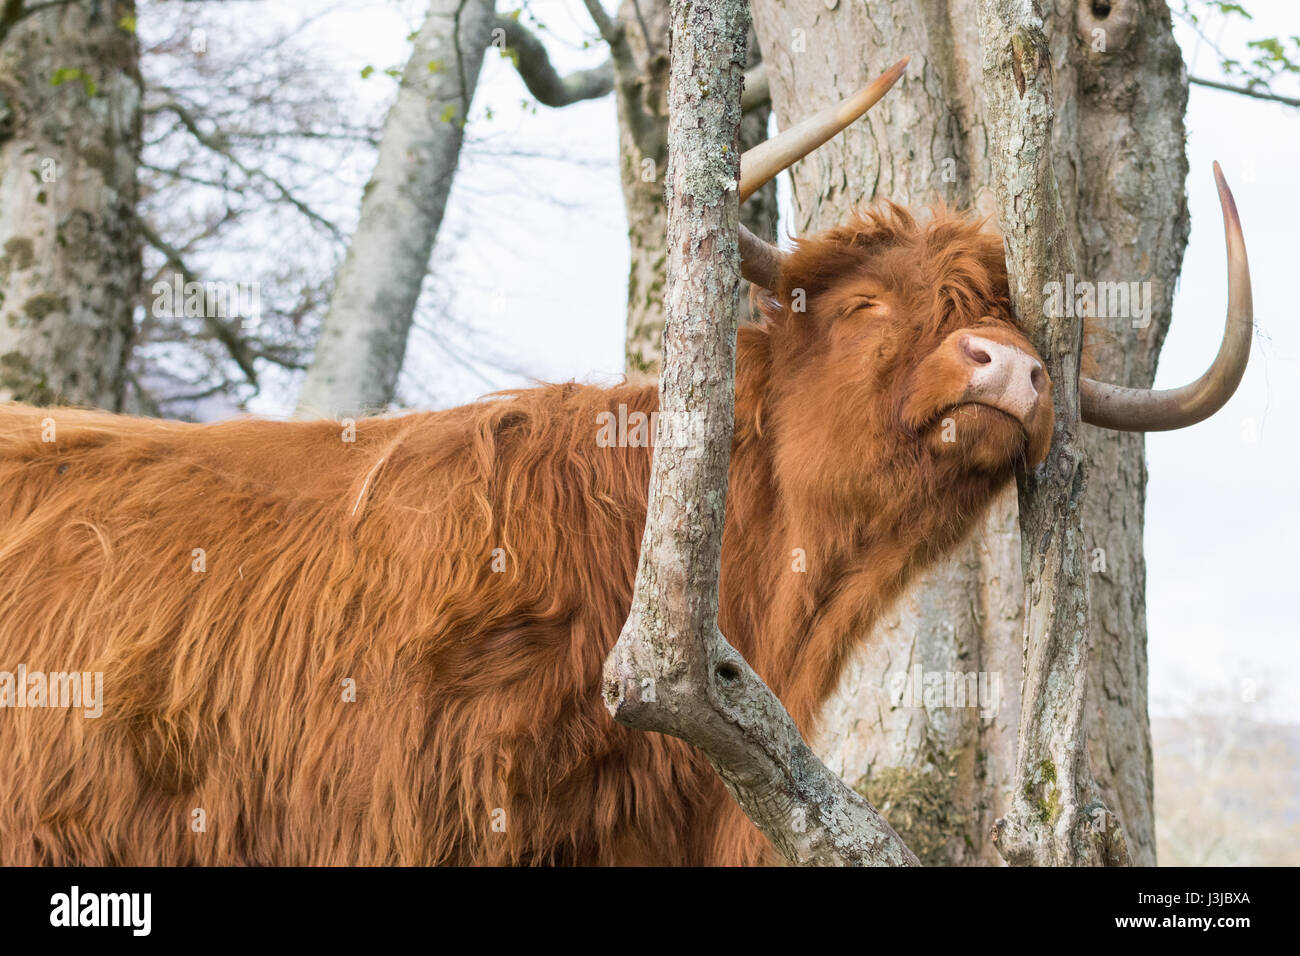 Bliss - a highland cow looking blissfully happy as it scratches against a tree - Stock Image